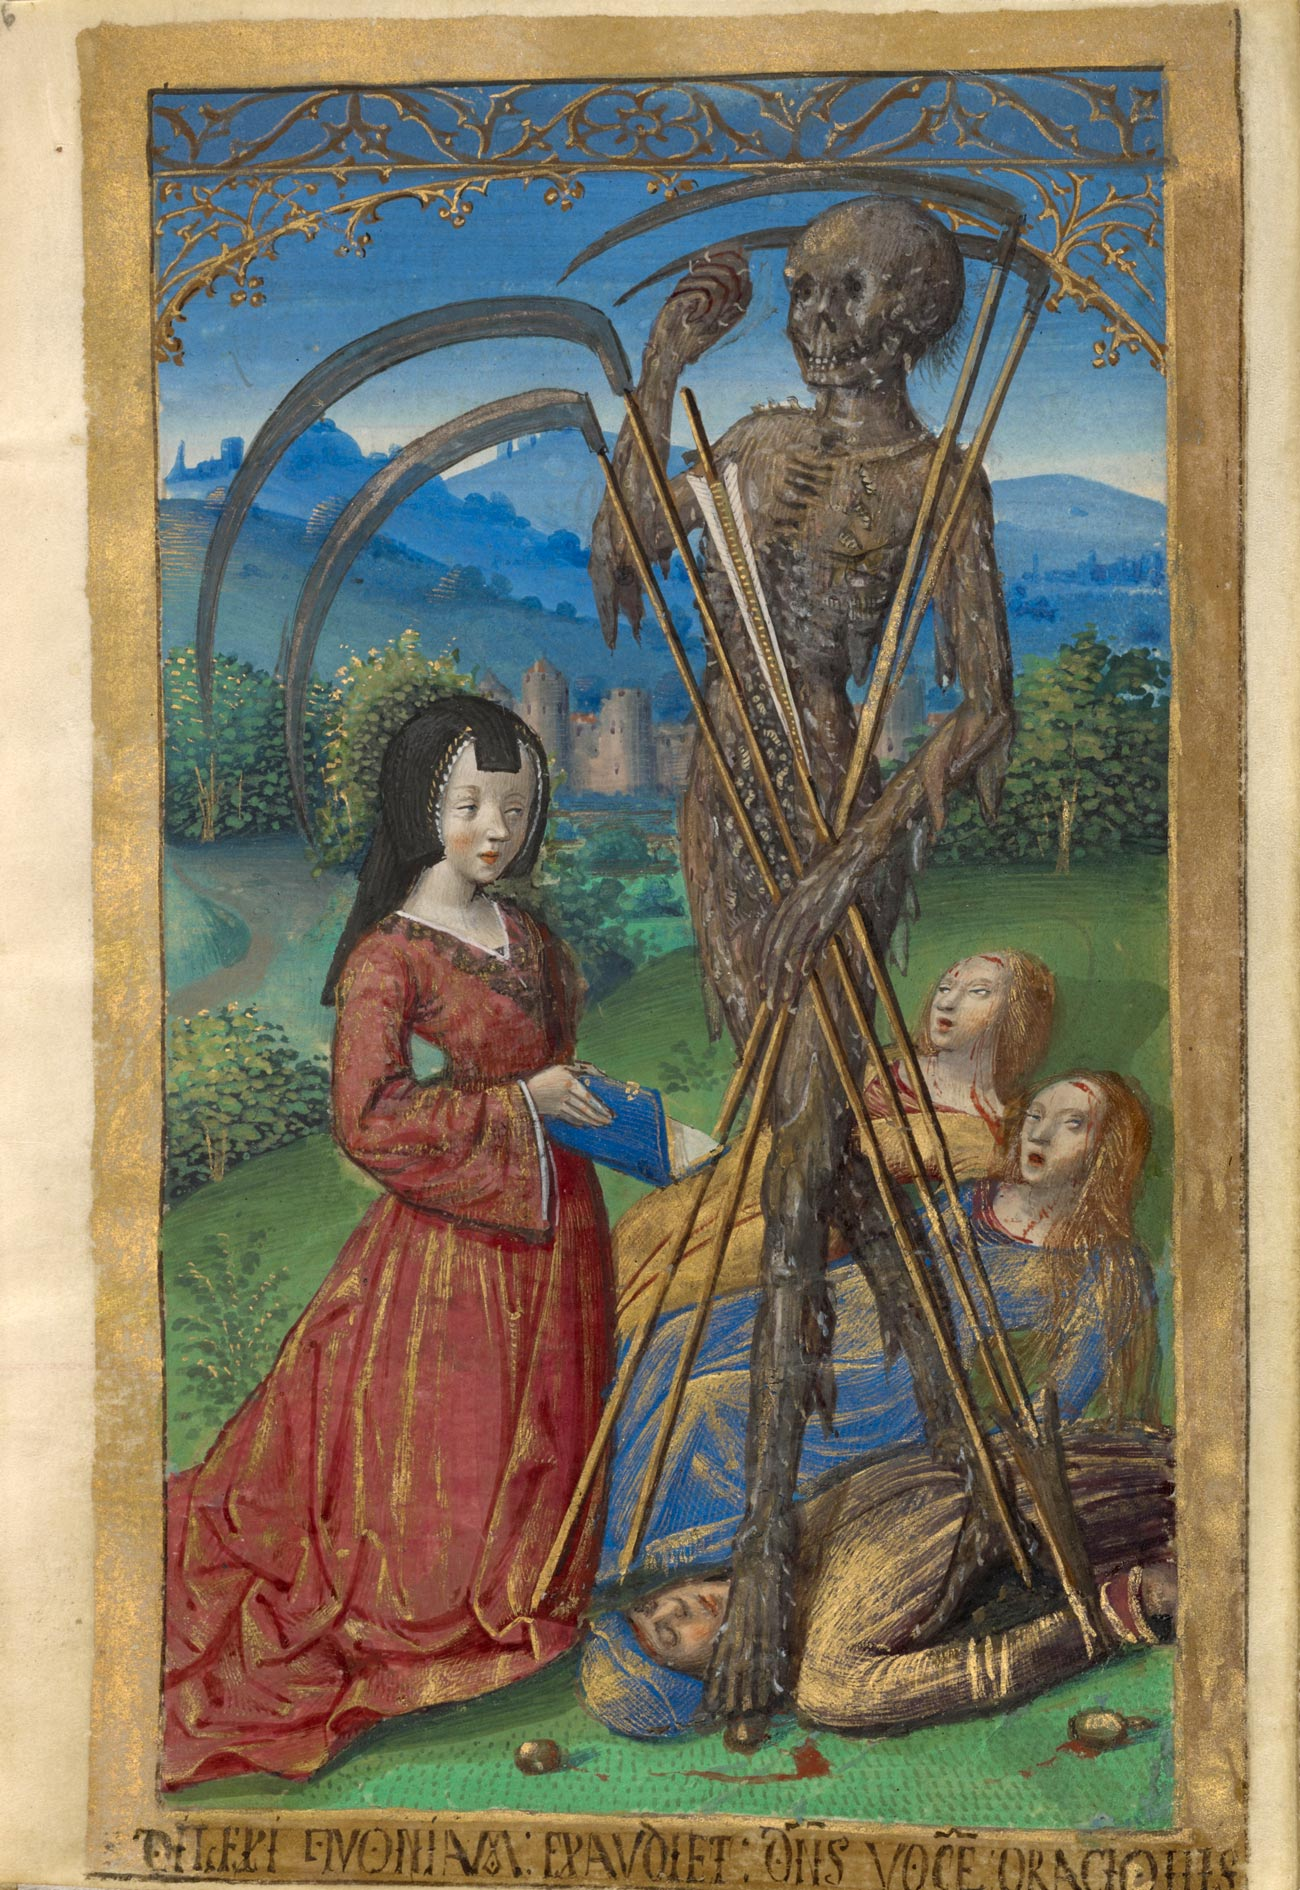 Girl in red dress holds an open book in front of a tall skeleton, holding four scythes, with two other women cowering in fear and a man lying dead on the ground